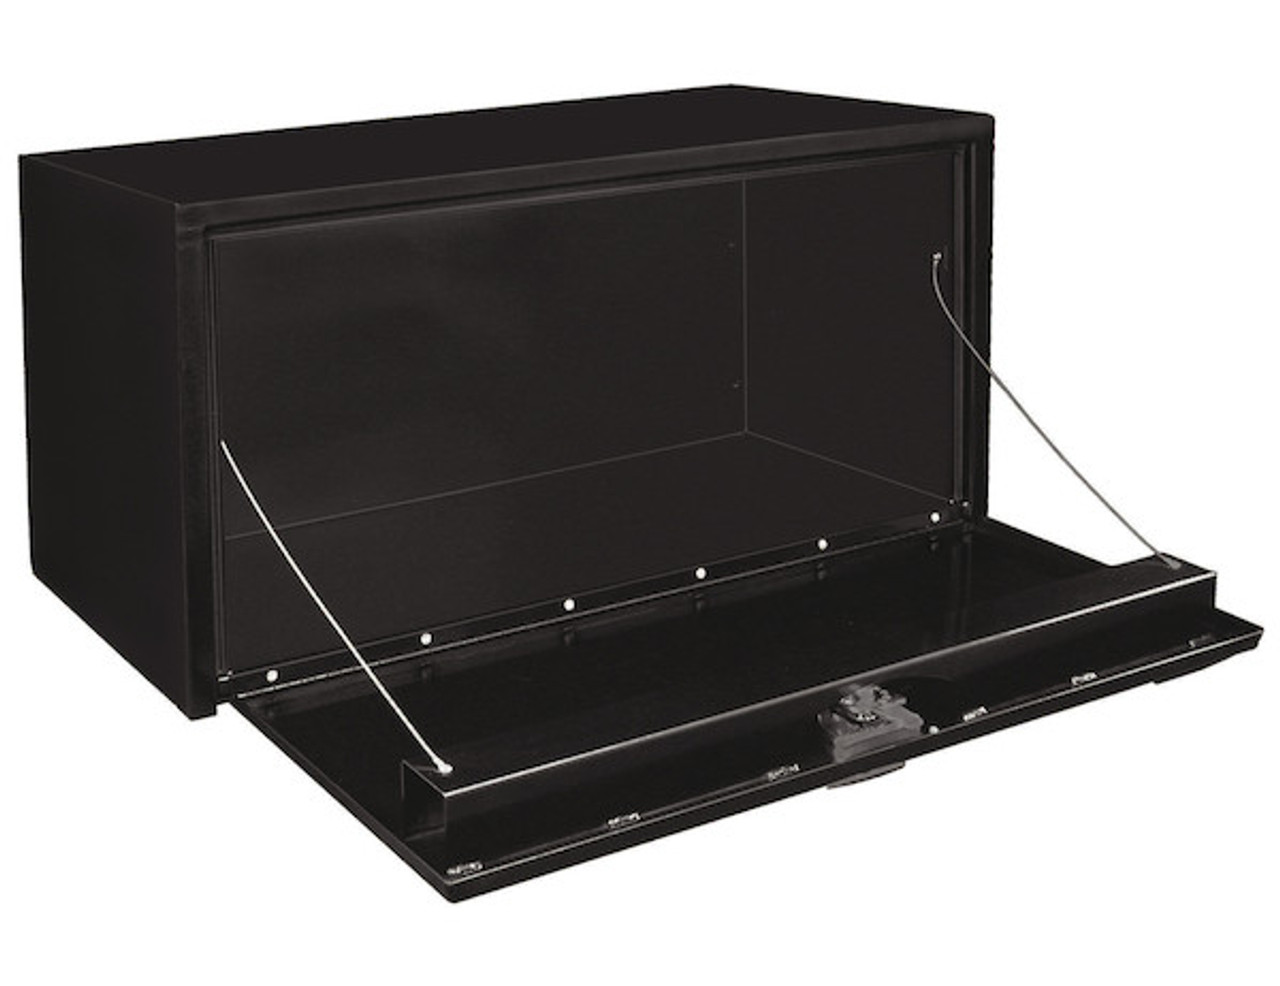 "1702300 BUYERS PRODUCTS BLACK STEEL UNDERBODY TRUCK TOOLBOX WITH T-LATCH 18""HX18""DX24""W"